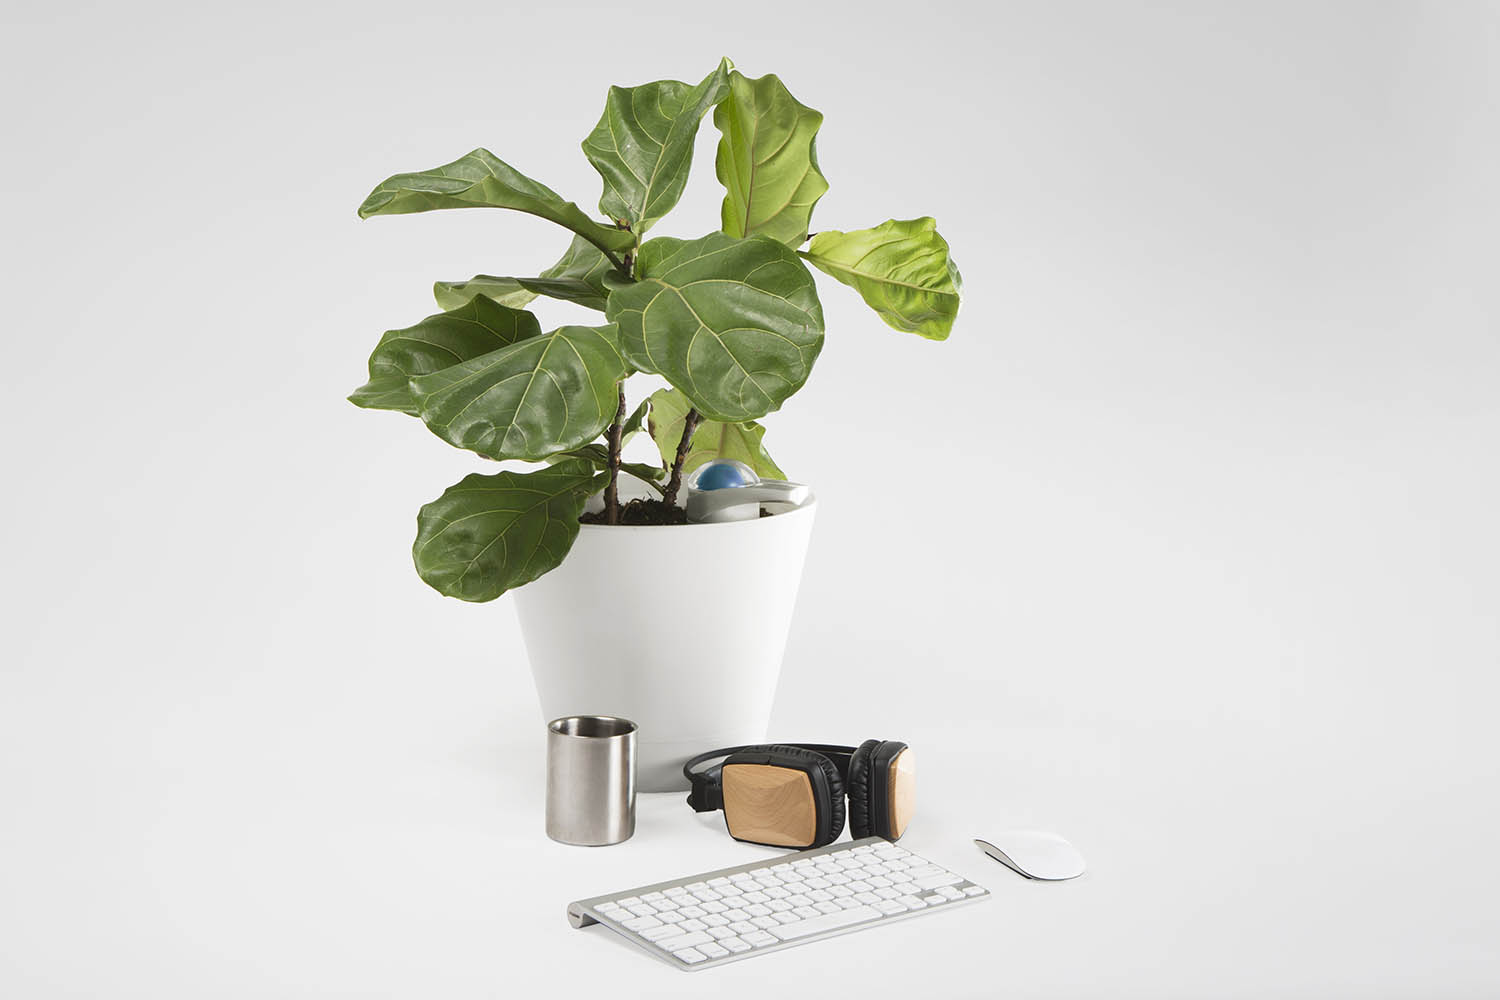 Intelligent watering device for office design with fiddle leaf fig